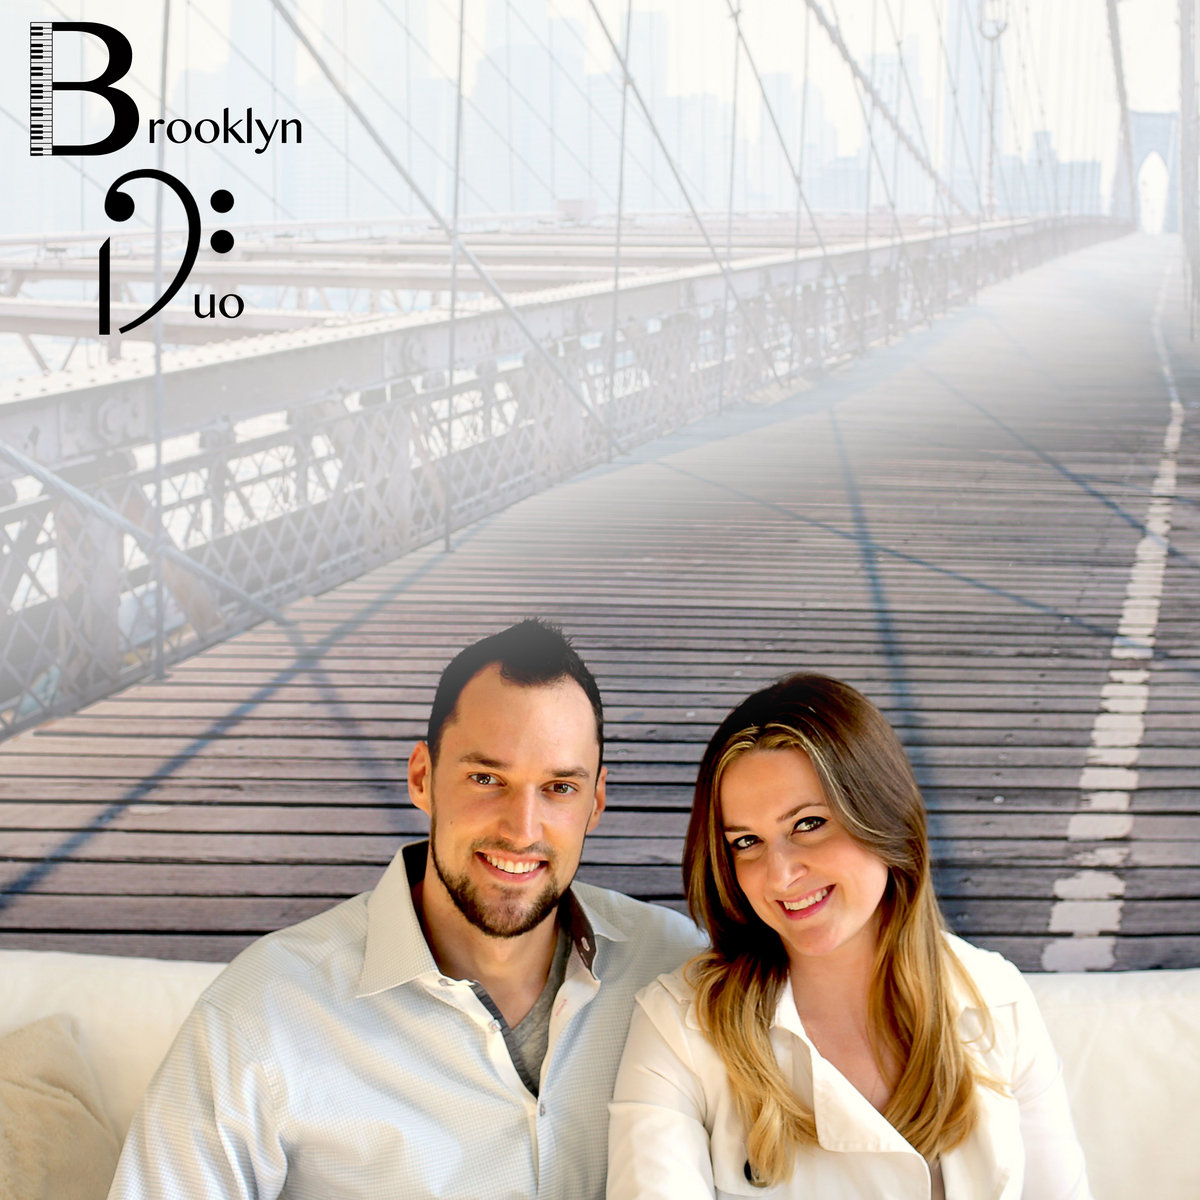 Chandelier (Sia Cover) | Brooklyn Duo